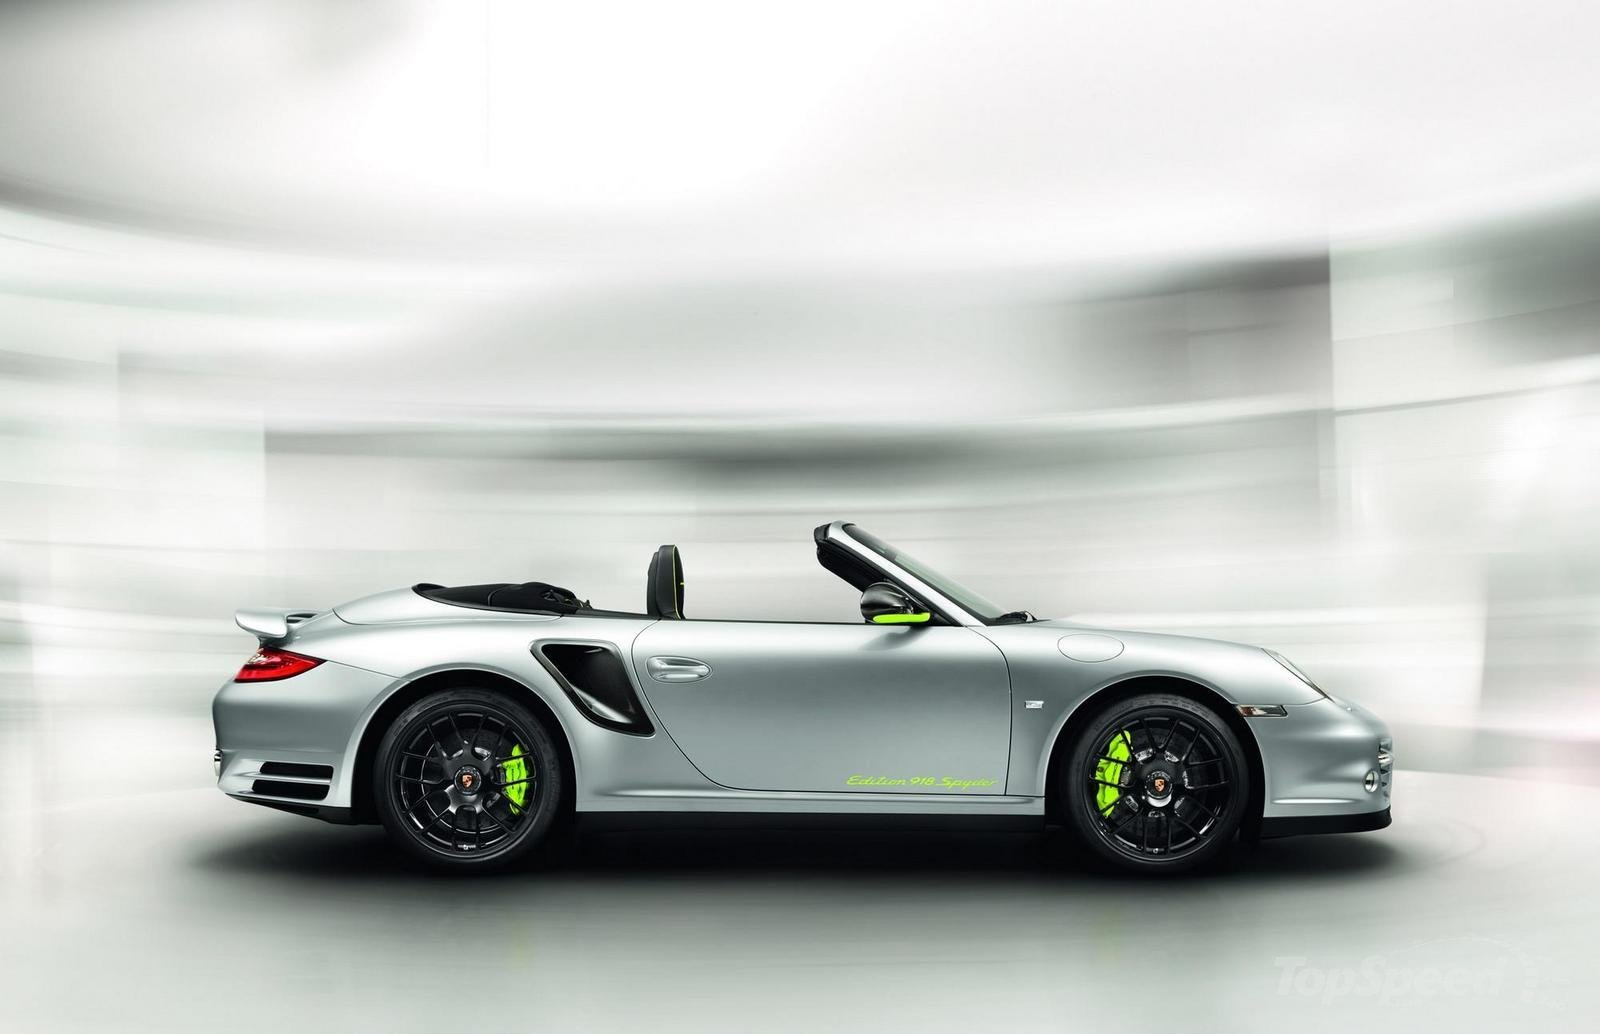 2011 porsche 911 turbo s edition 918 spyder. Black Bedroom Furniture Sets. Home Design Ideas